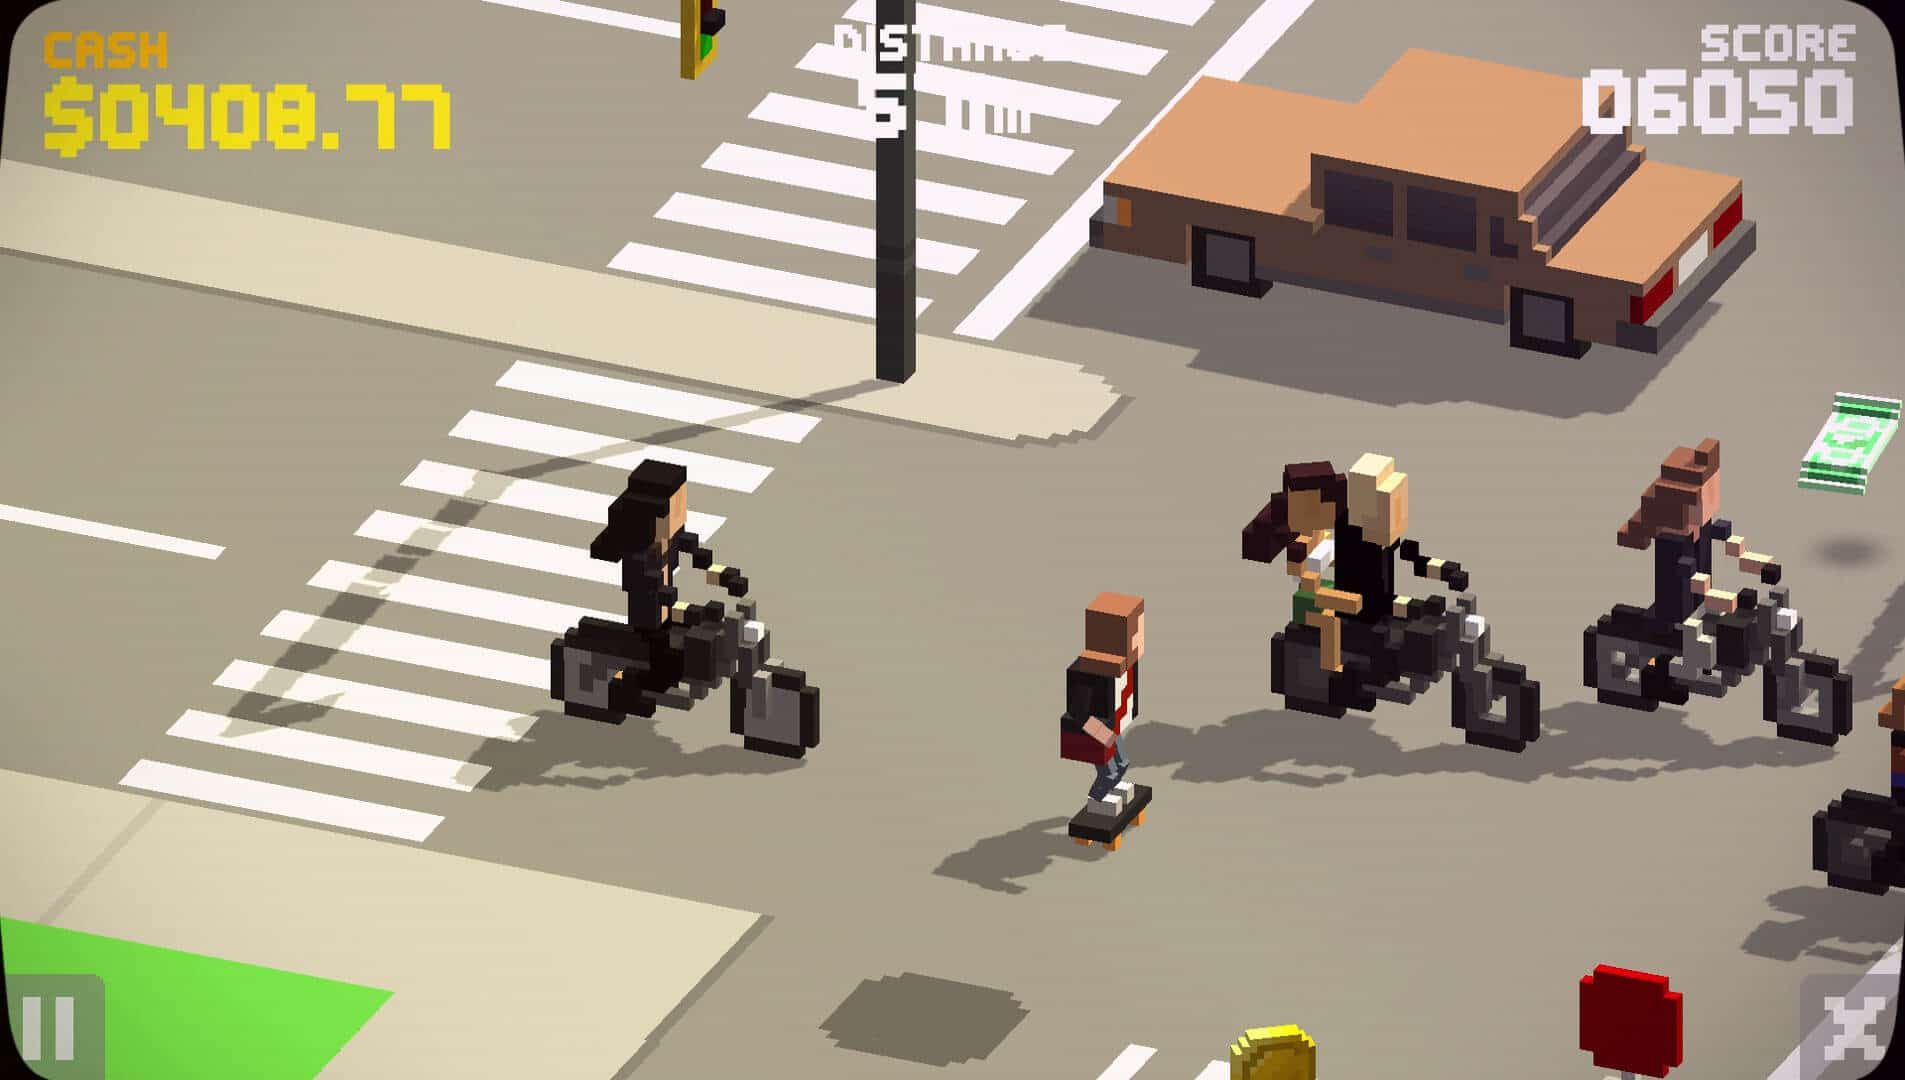 A biker gang 'just passing' in The Videokid